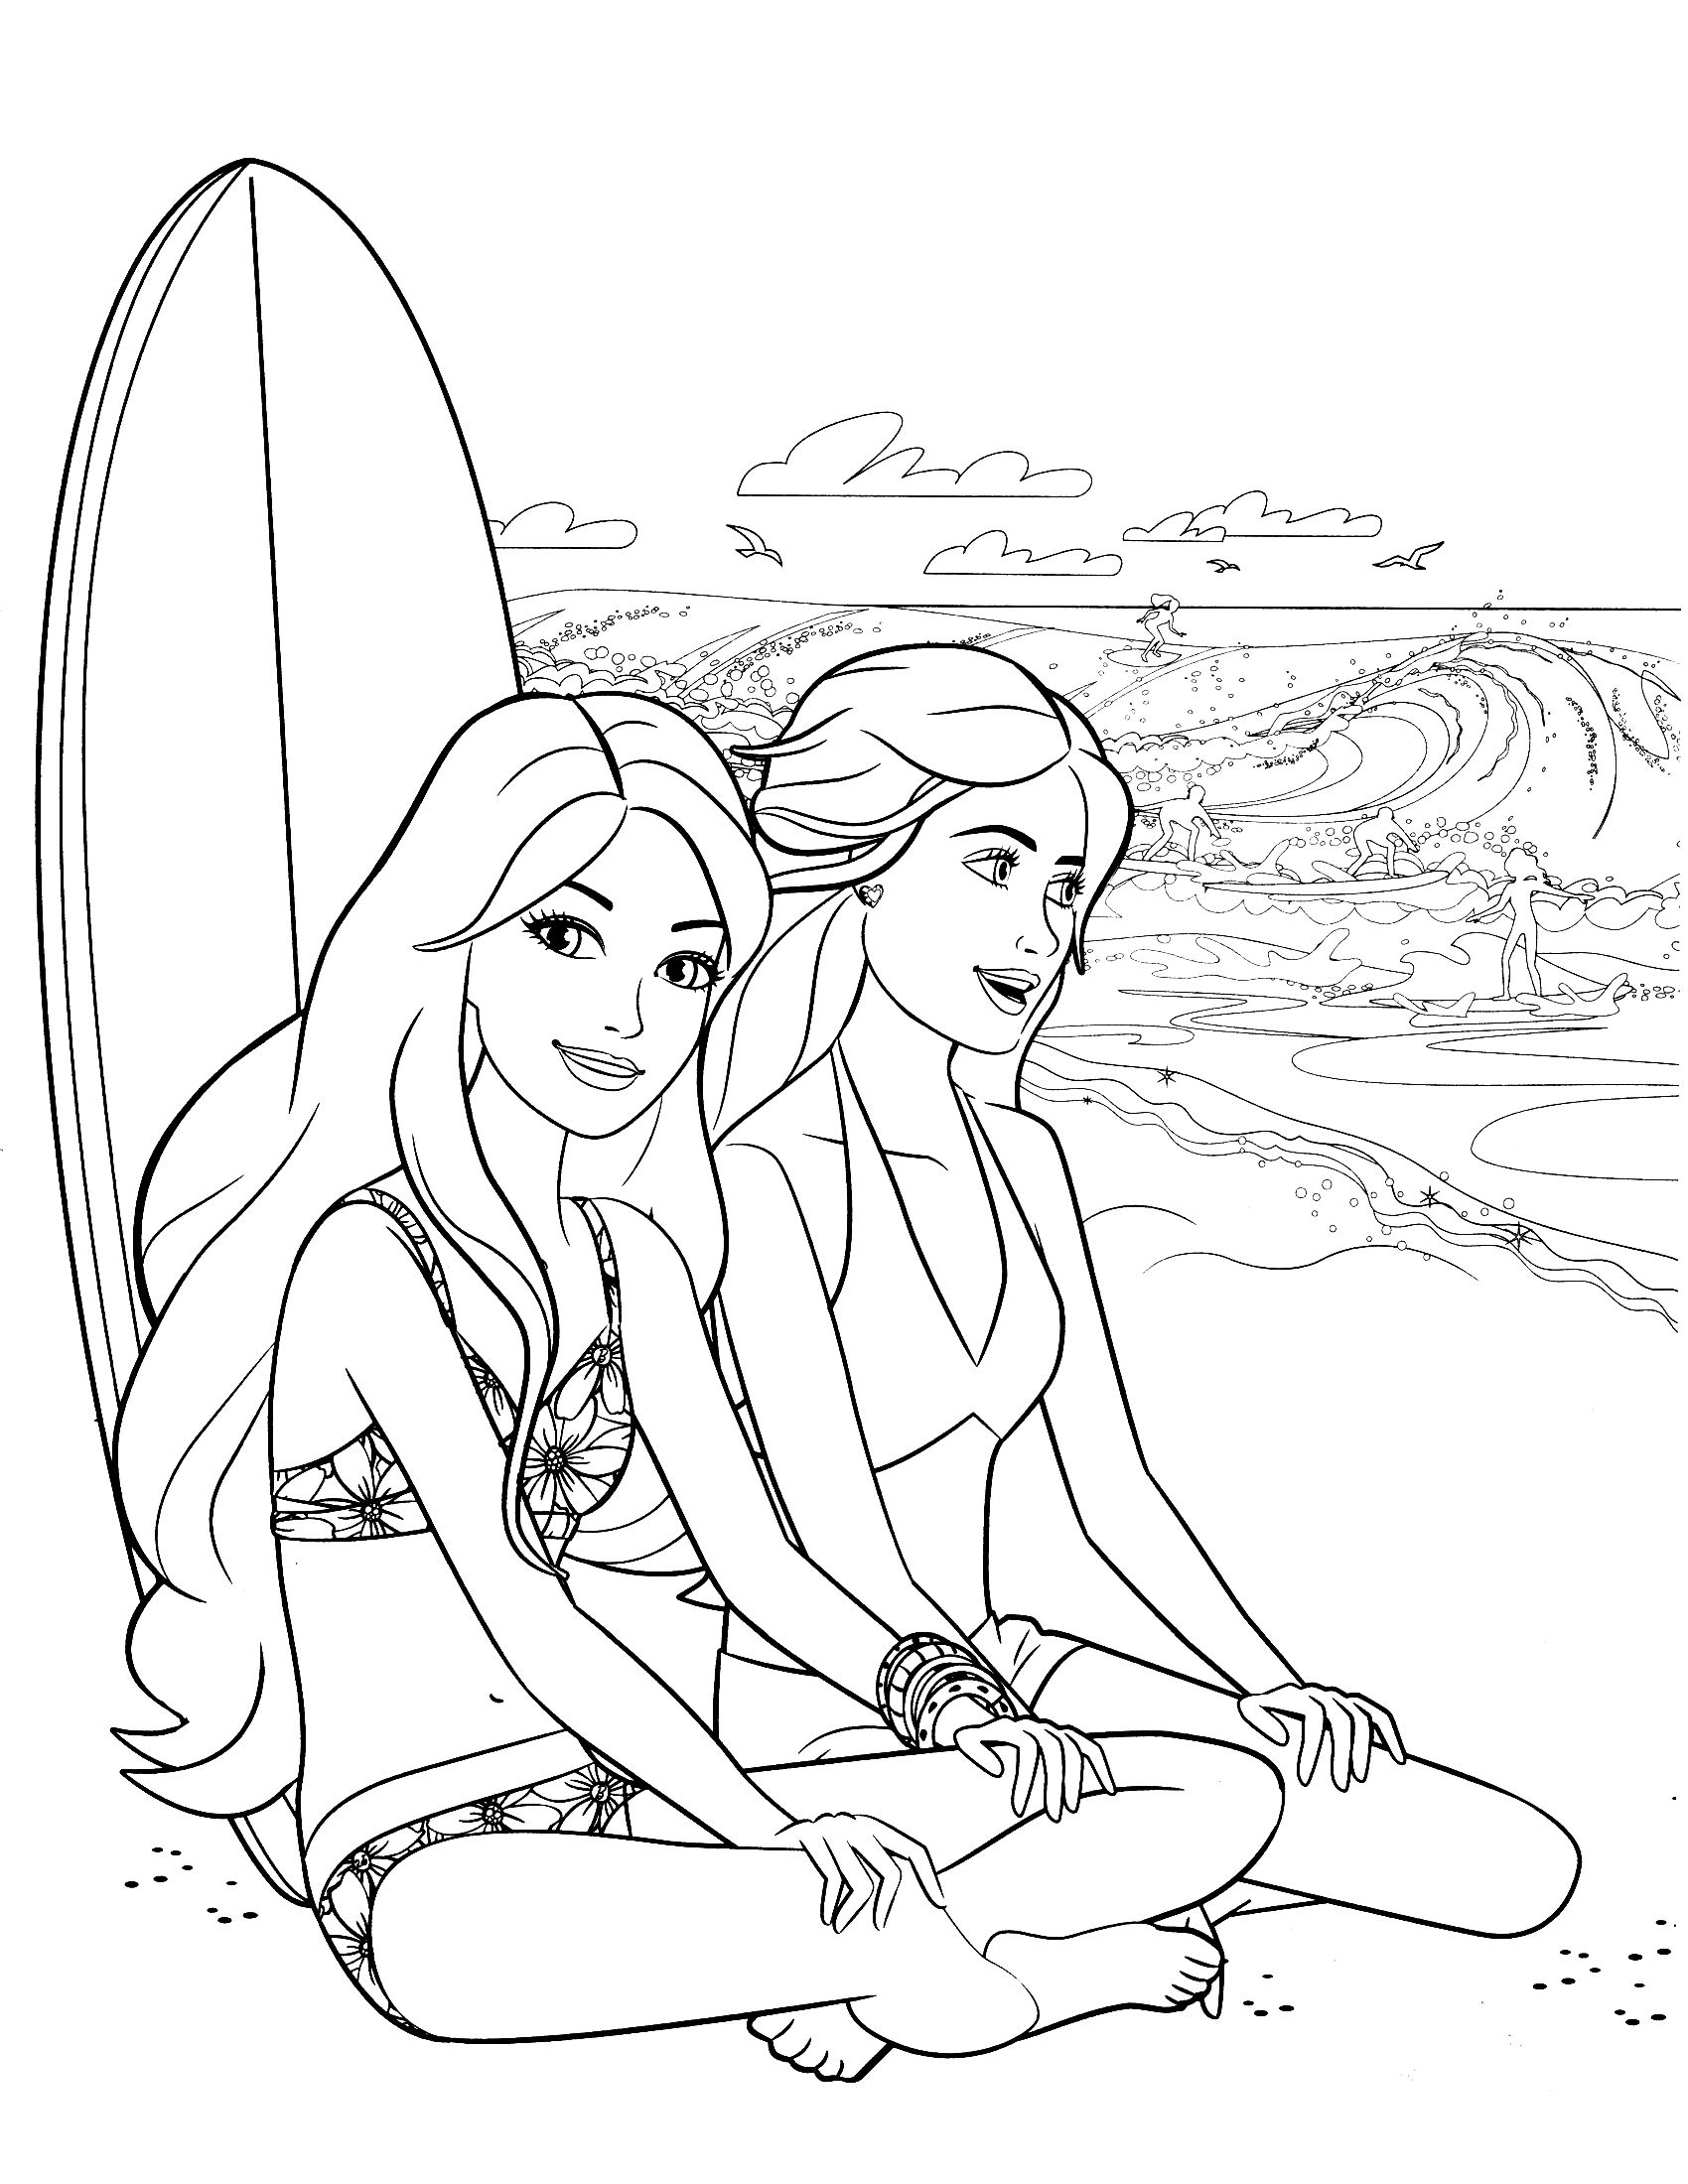 barbie coloring pages  Googlesgning  Barbie Coloring Pages